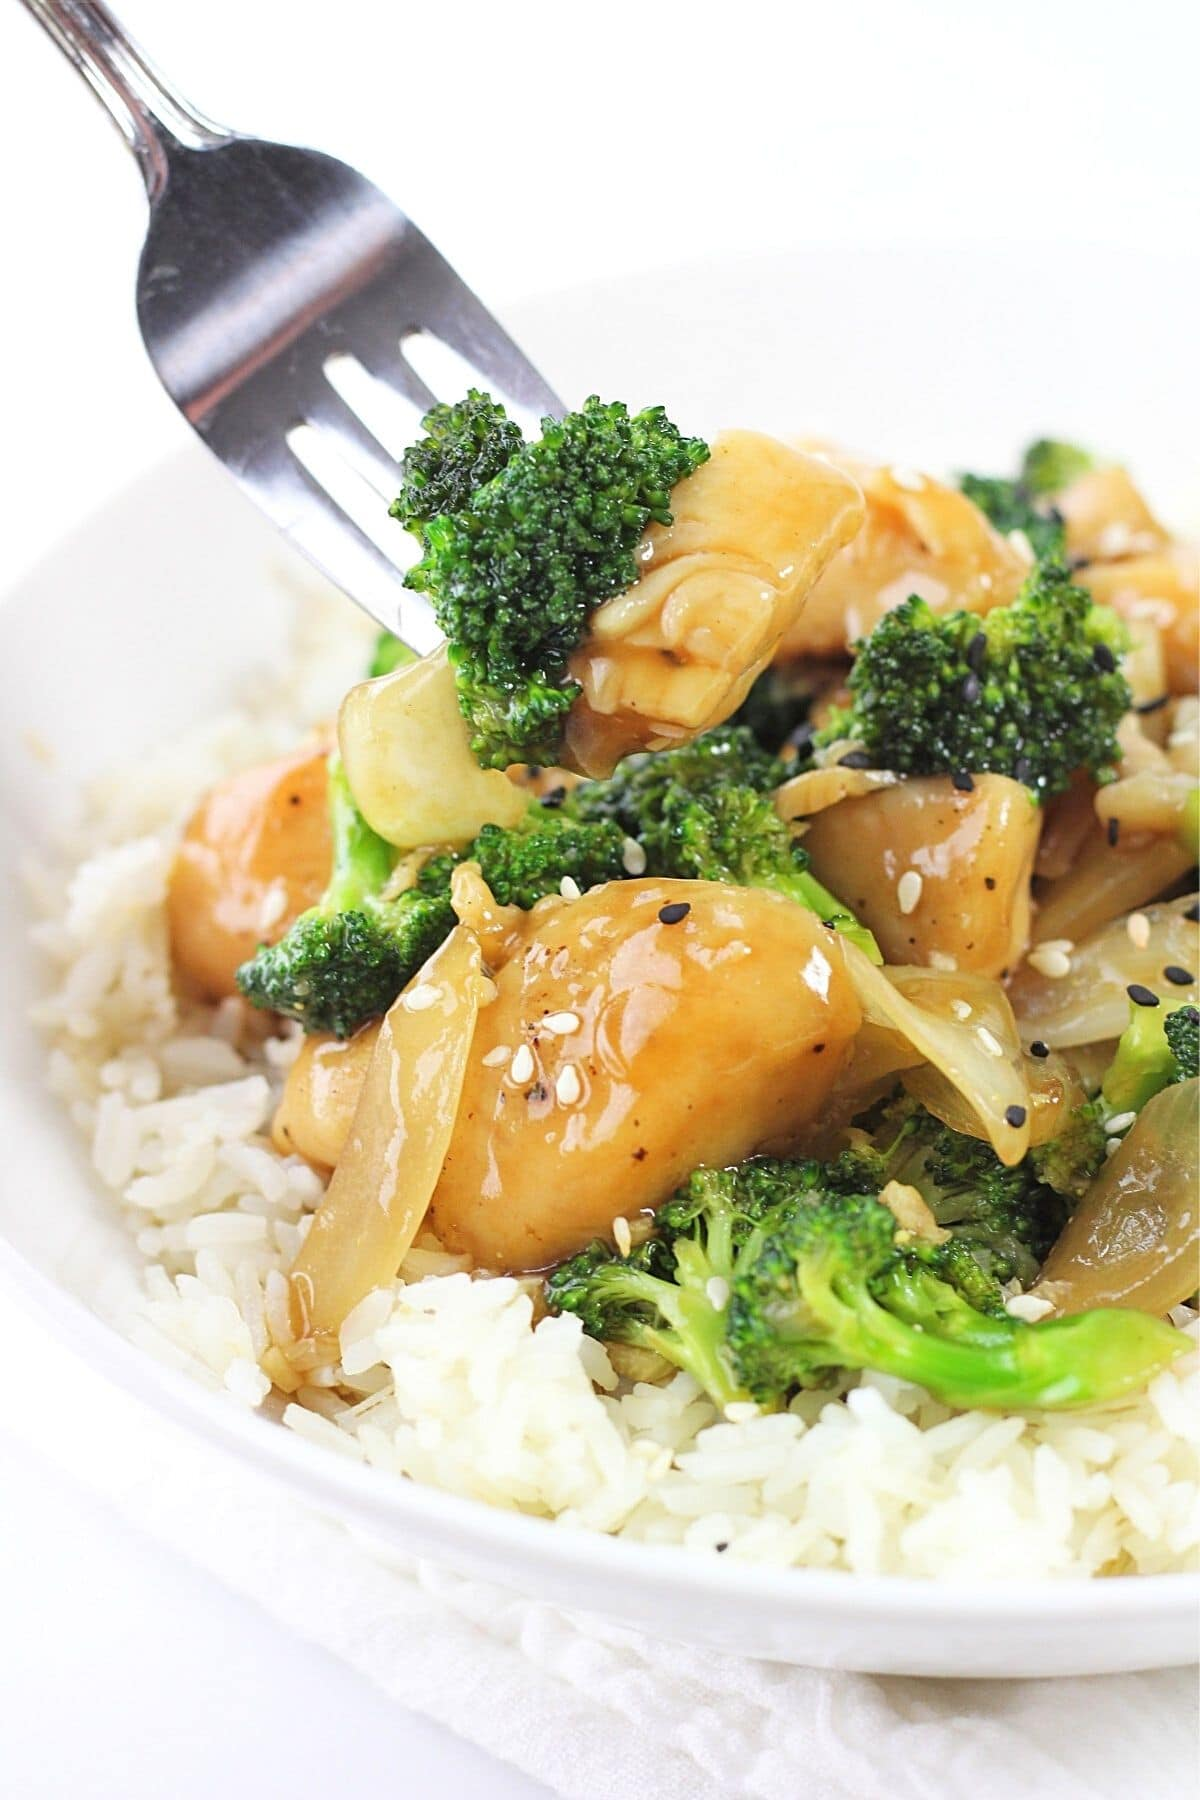 forkful of chinese chicken and broccoli stir-fry being taken from the bowl